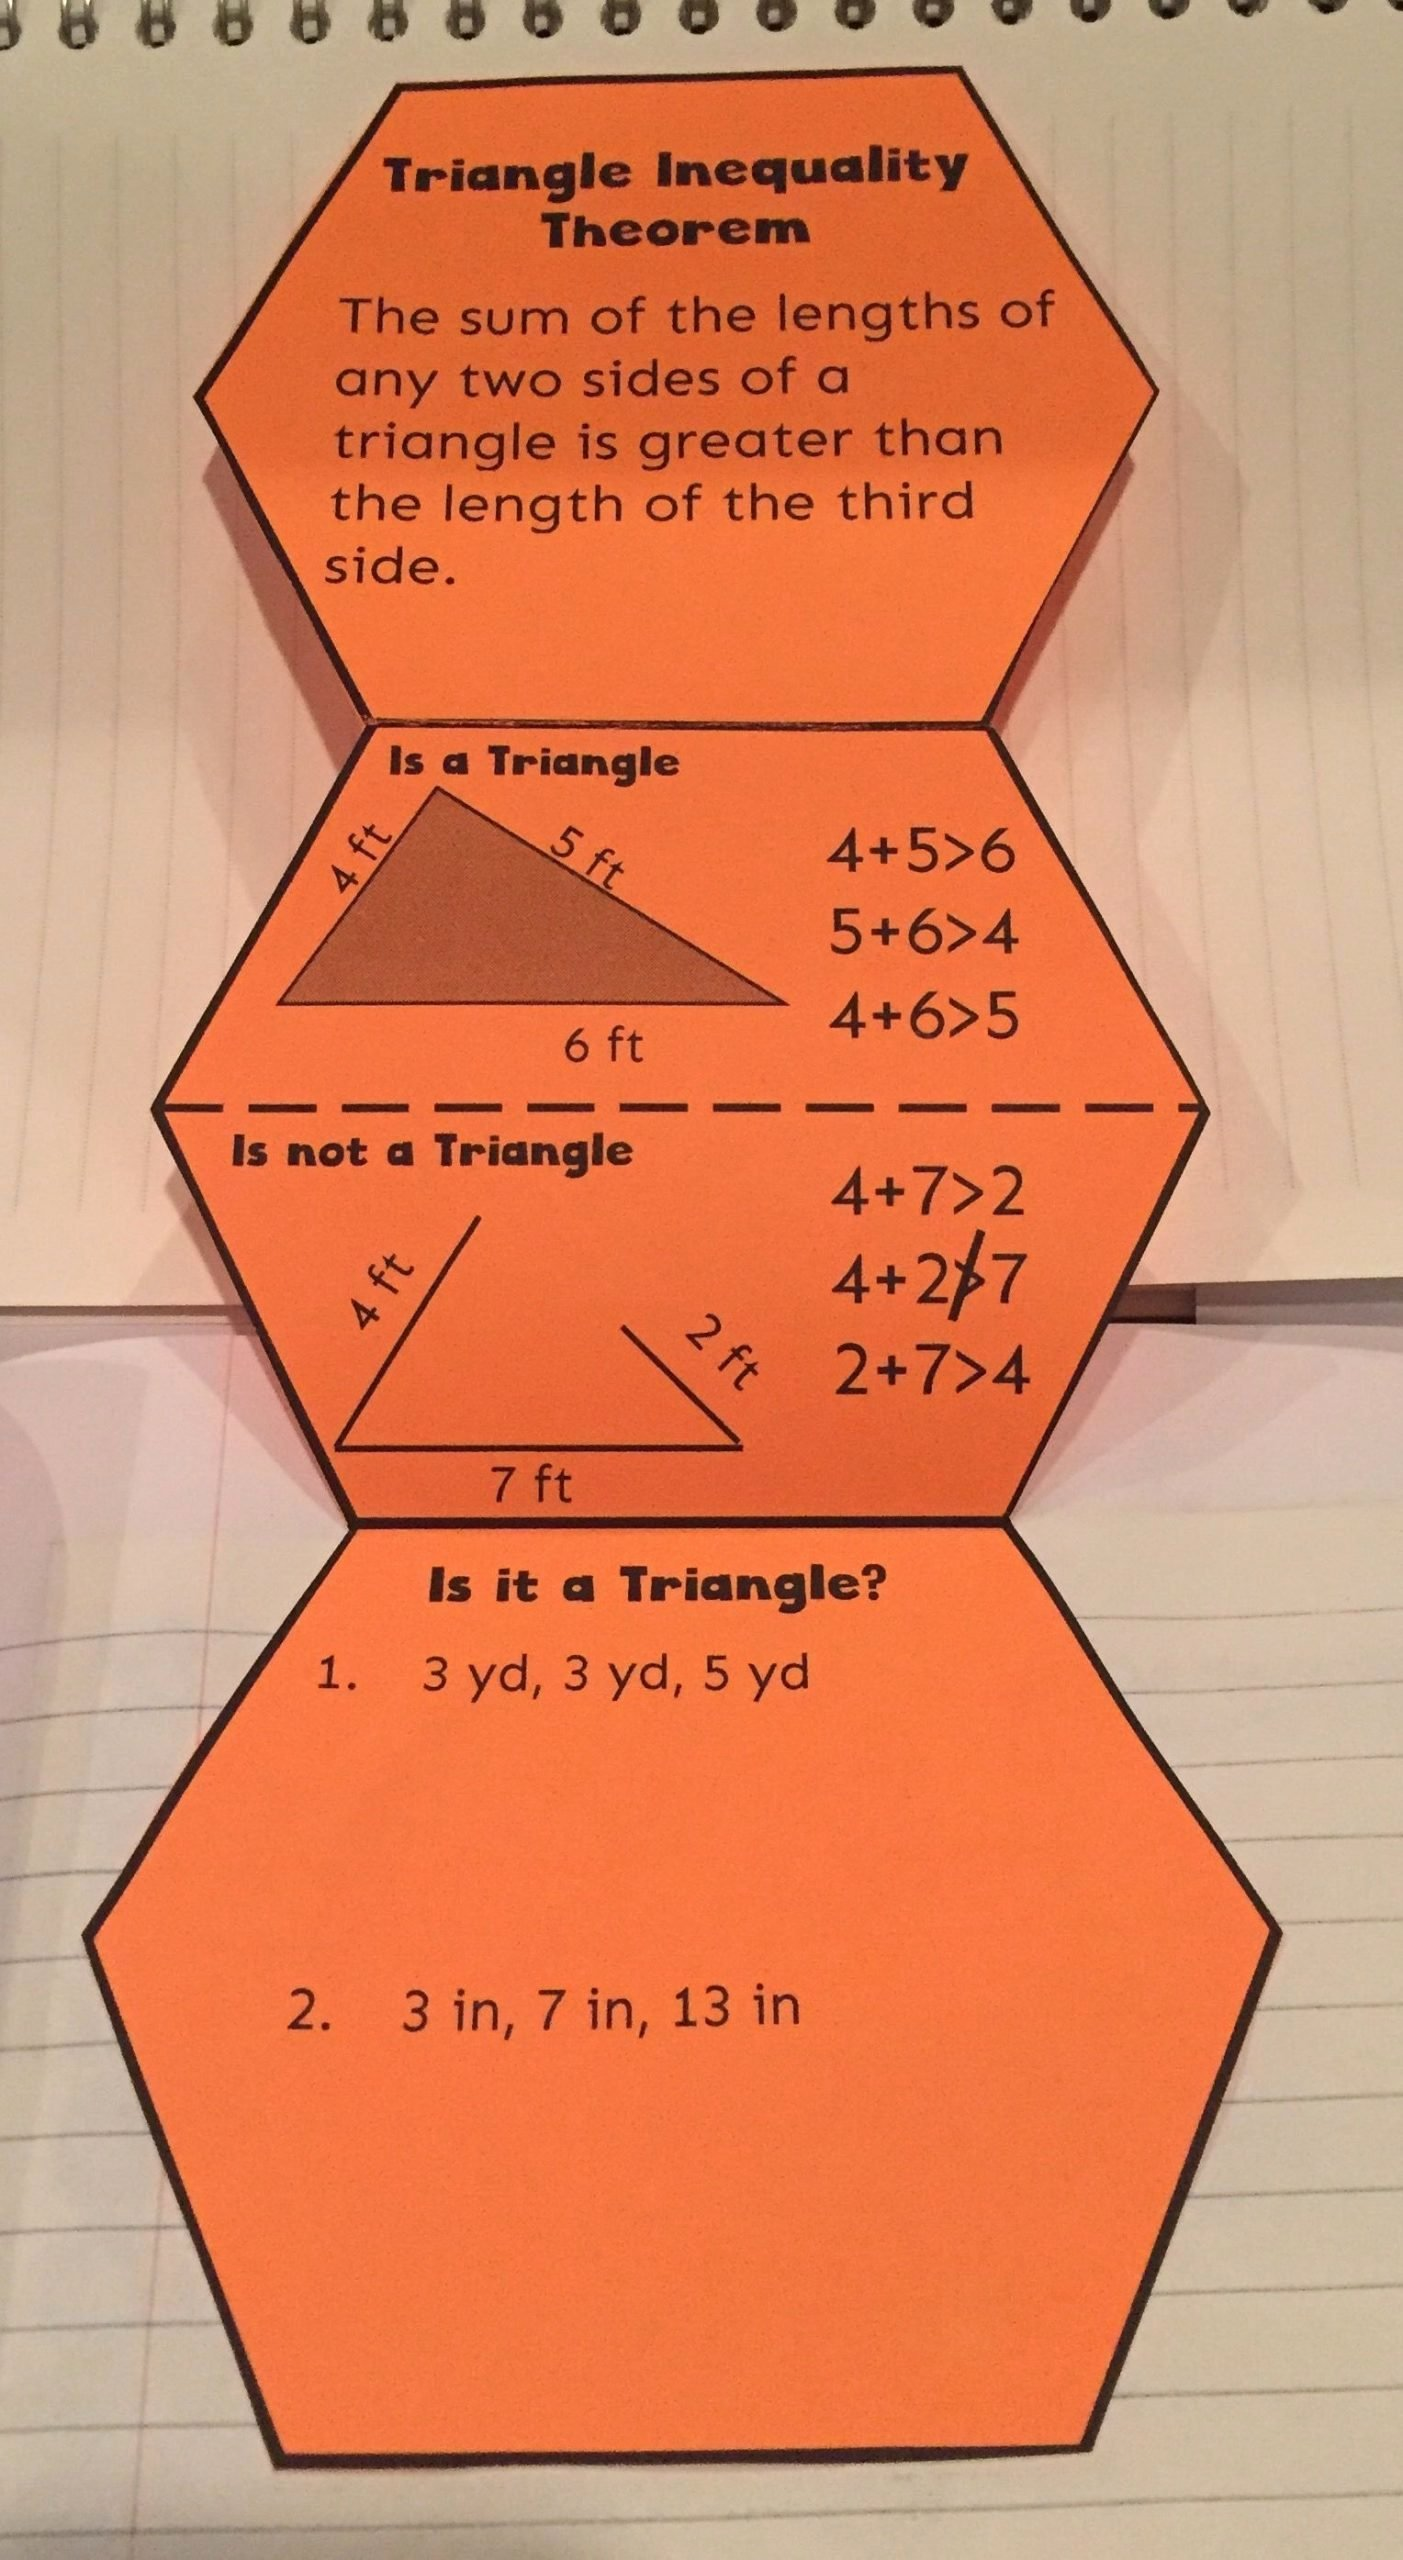 Midsegment theorem Worksheet Answer Key Printable Triangle Midsegment theorem Worksheet